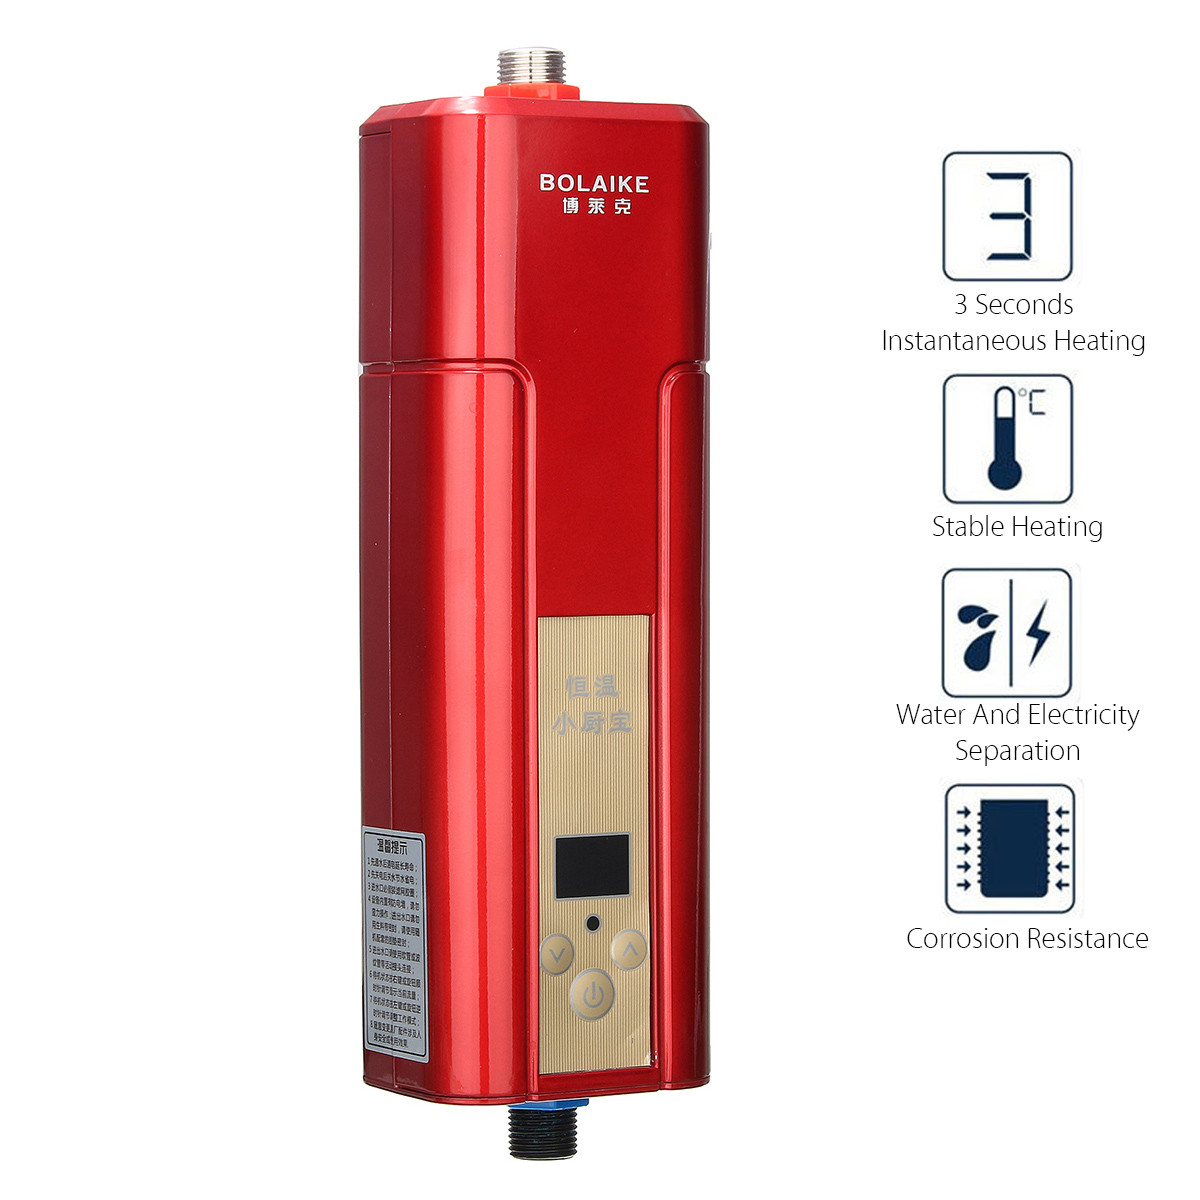 220V 5500W Electric Water Heater Mini Instant Tankless Water Heater Indoor Shower Kitchen Bathroom Water Heater Appliances220V 5500W Electric Water Heater Mini Instant Tankless Water Heater Indoor Shower Kitchen Bathroom Water Heater Appliances